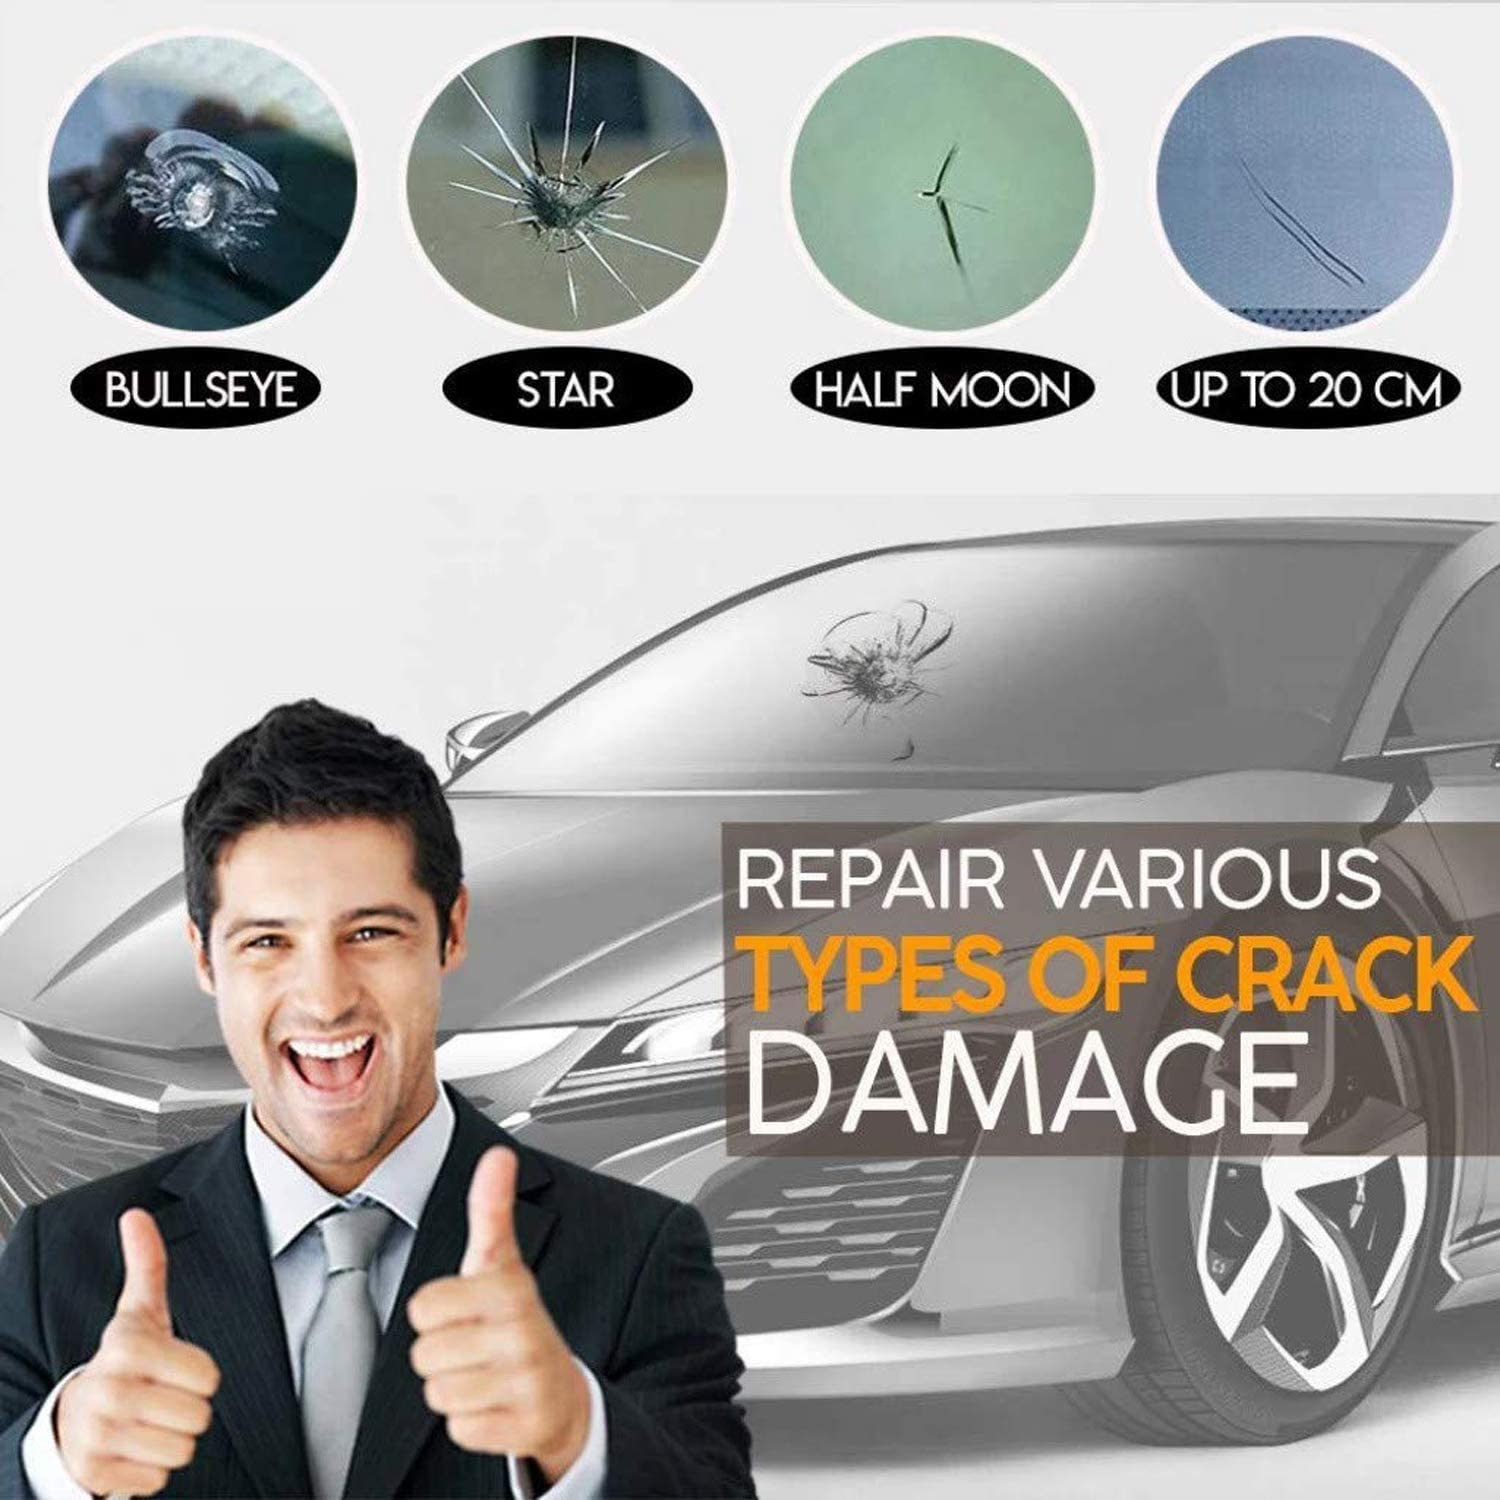 Windshield Repair Resin for Repairing Car Glass Windshield Crack Chips,Bulls-Eye,Spider Web,Star-Shaped,Half-Moon Crescents Automotive Glass Nano Repair Fluid SCOBUTY Car windshield Repair Kit 2pc